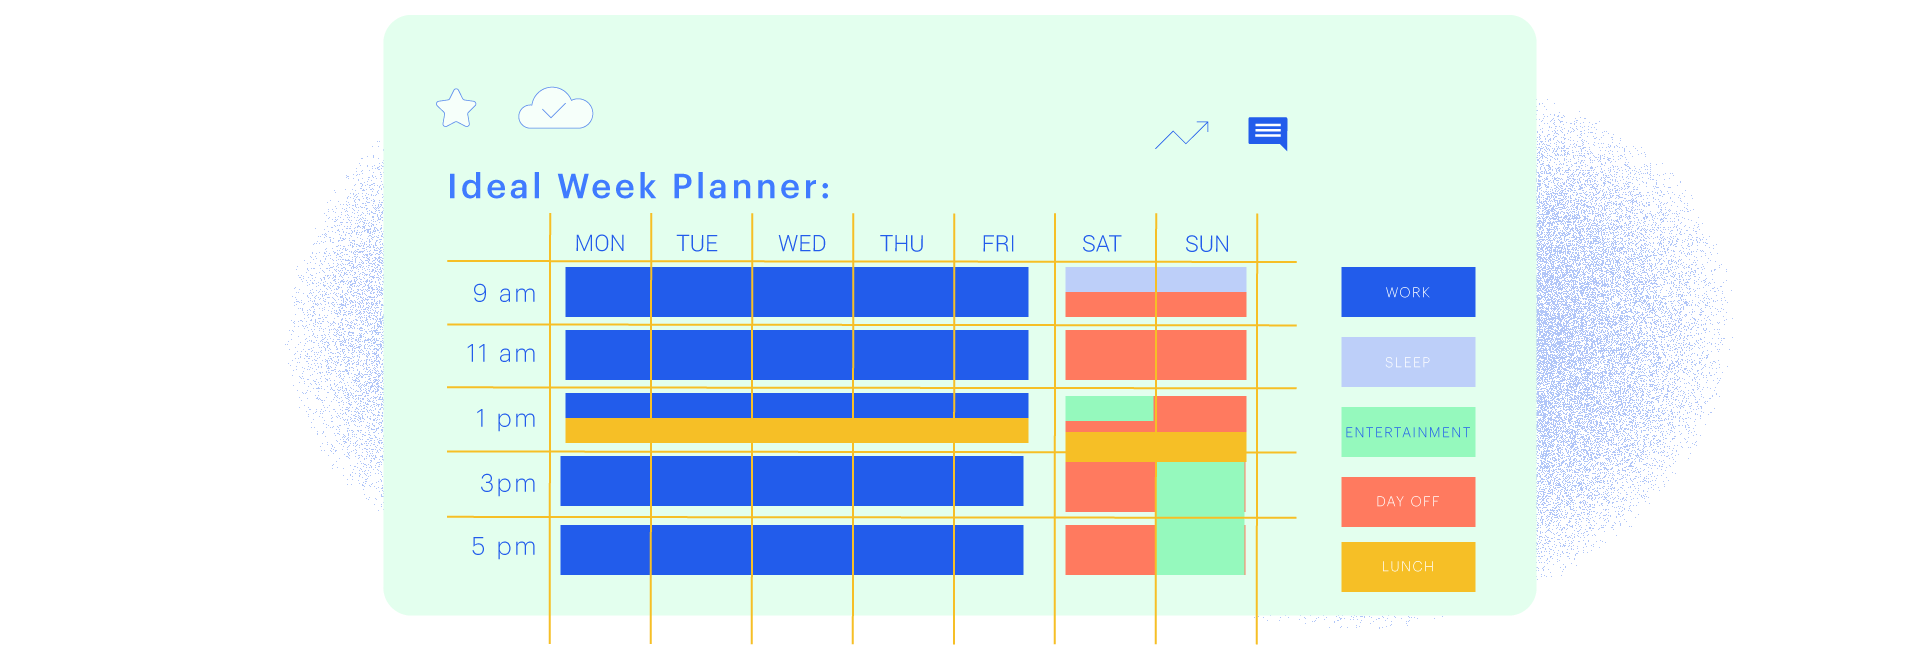 Wondering what an ideal weekly planner looks like? You can simply take an excel sheet and convert it to your ideal week plan. Just take seven columns for the seven days of the week. Then put the hours of the day along the left side in a row. You can use this as a printable template too.